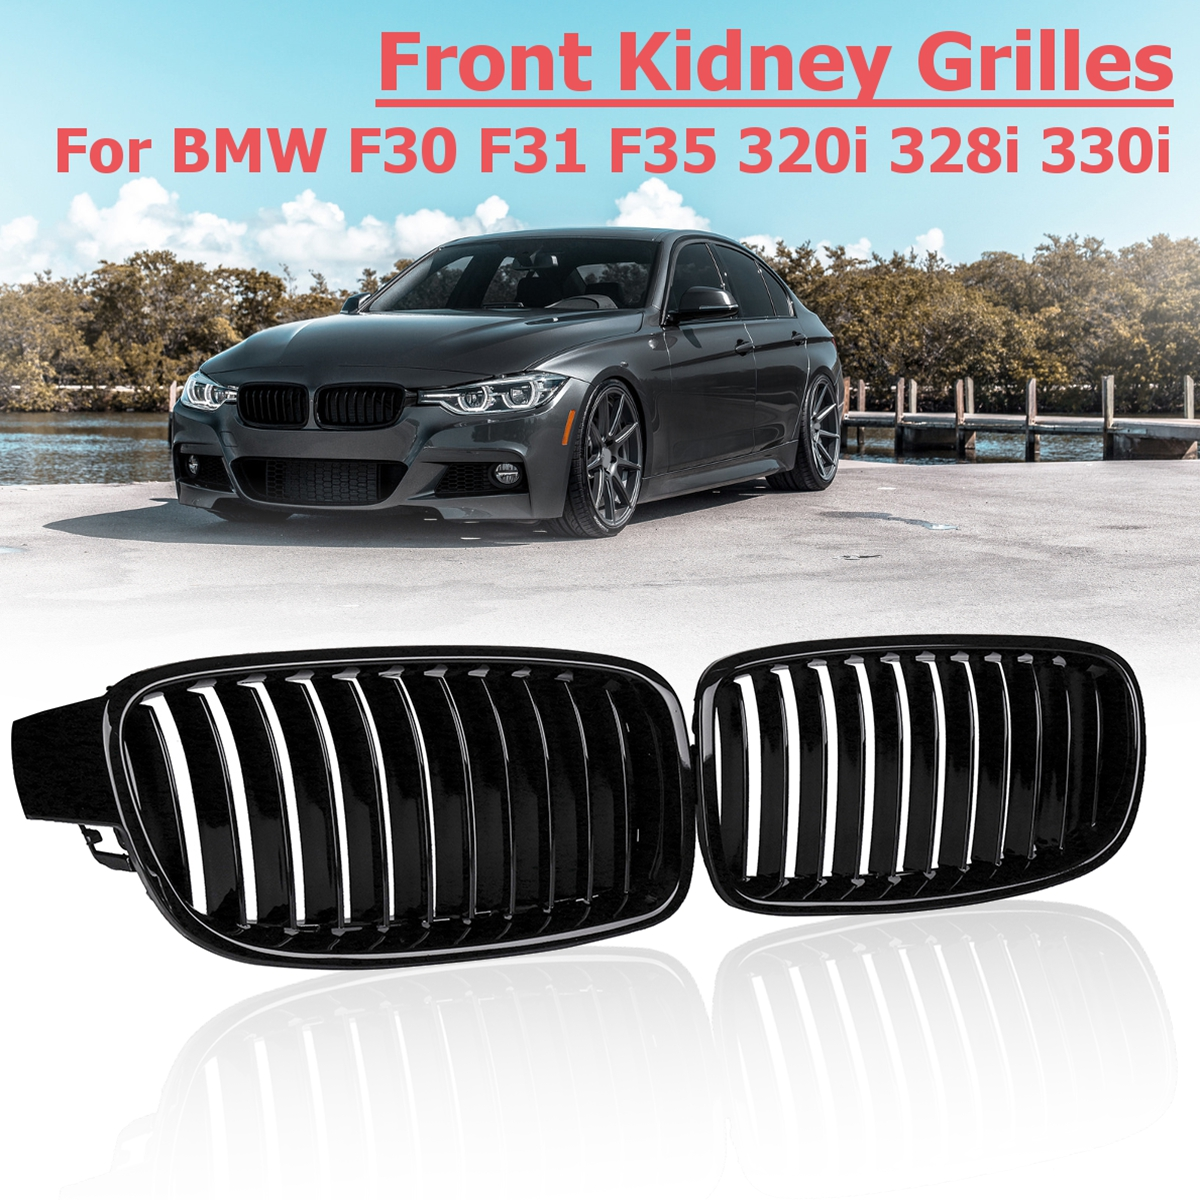 1 Pair Gloss Black Front Kidney <font><b>Grilles</b></font> Car Styling replacement Racing <font><b>Grilles</b></font> for BMW <font><b>F30</b></font> F31 F35 320i 2012 13 14 15 16 17 2018 image